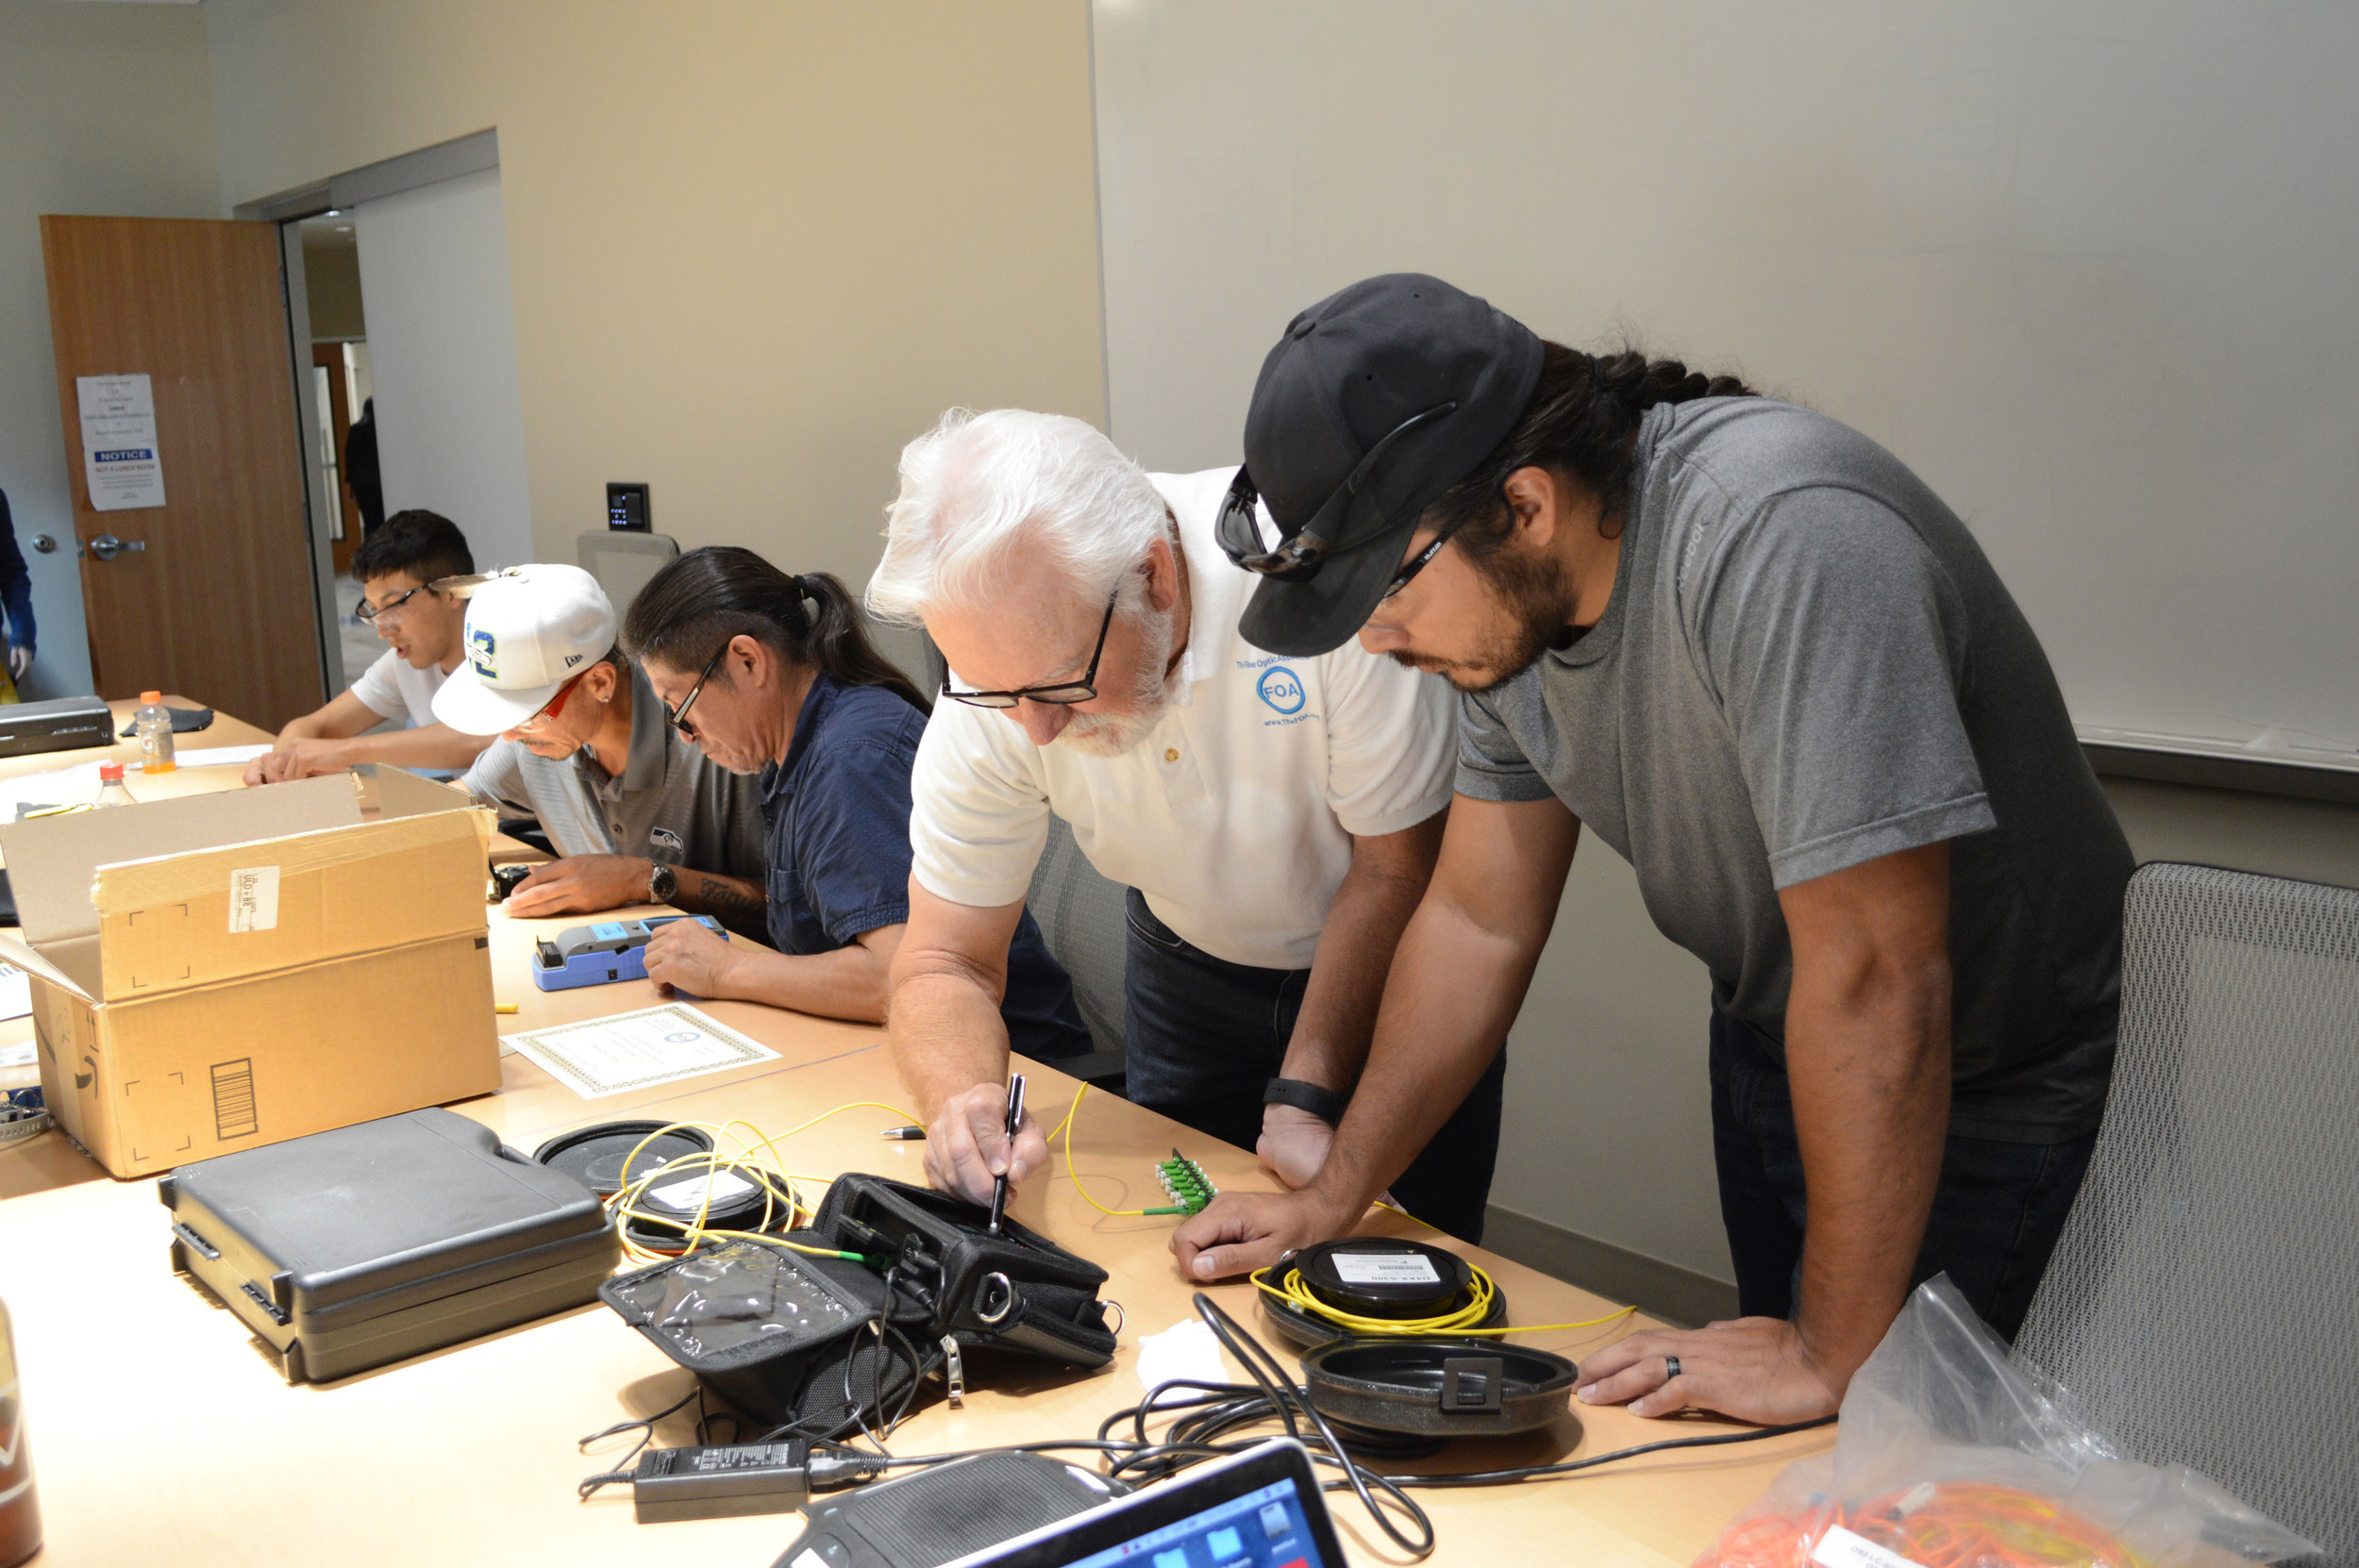 FOA Certified Fiber Optic Specialist, Splicing (CFOS/S) always bundled with (CFOS/T)4-Day Course - FOA Certified Fiber Optic Specialist, Splicing (CFOS/S) Bundled with (CFOS/T)CFOS/S - Certified Fiber Optic Specialist, Splicing is the FOA certification for technicians splicing primarily outside plant (OSP) fiber optic cable plants for concatenation and termination. The skills focus includes cable preparation of numerous cables, fusion splicing fibers, placing splices in splice trays and then placing trays in splice closures. Splice testing with an OTDR is also covered.